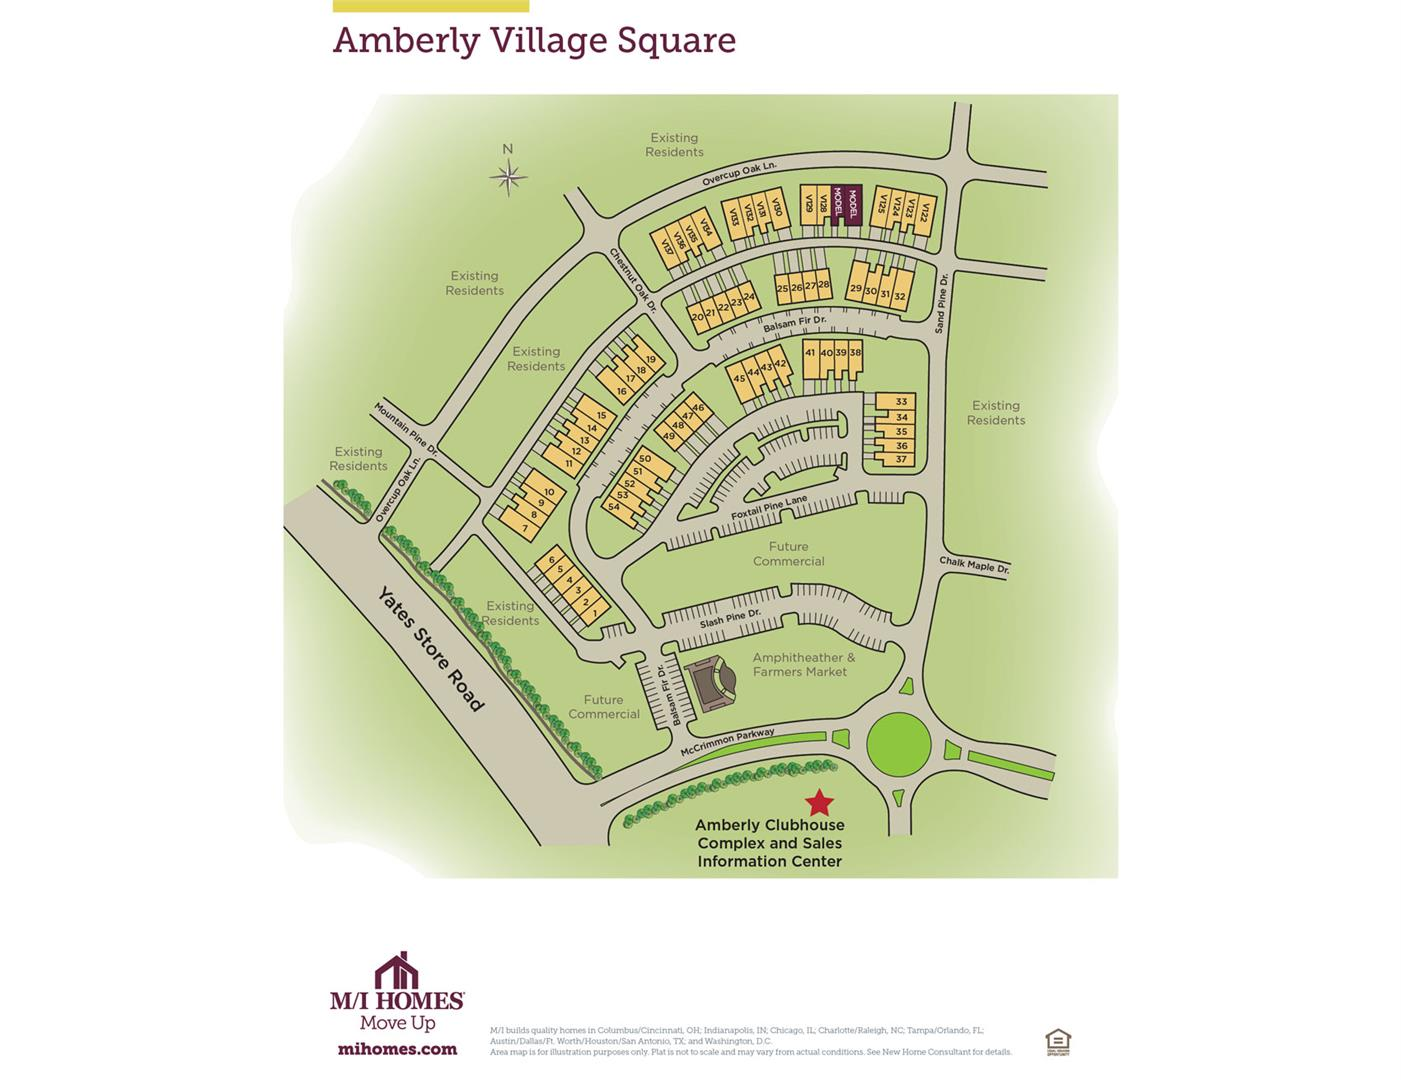 Amberly Village Square In Cary Nc Prices Plans Availability